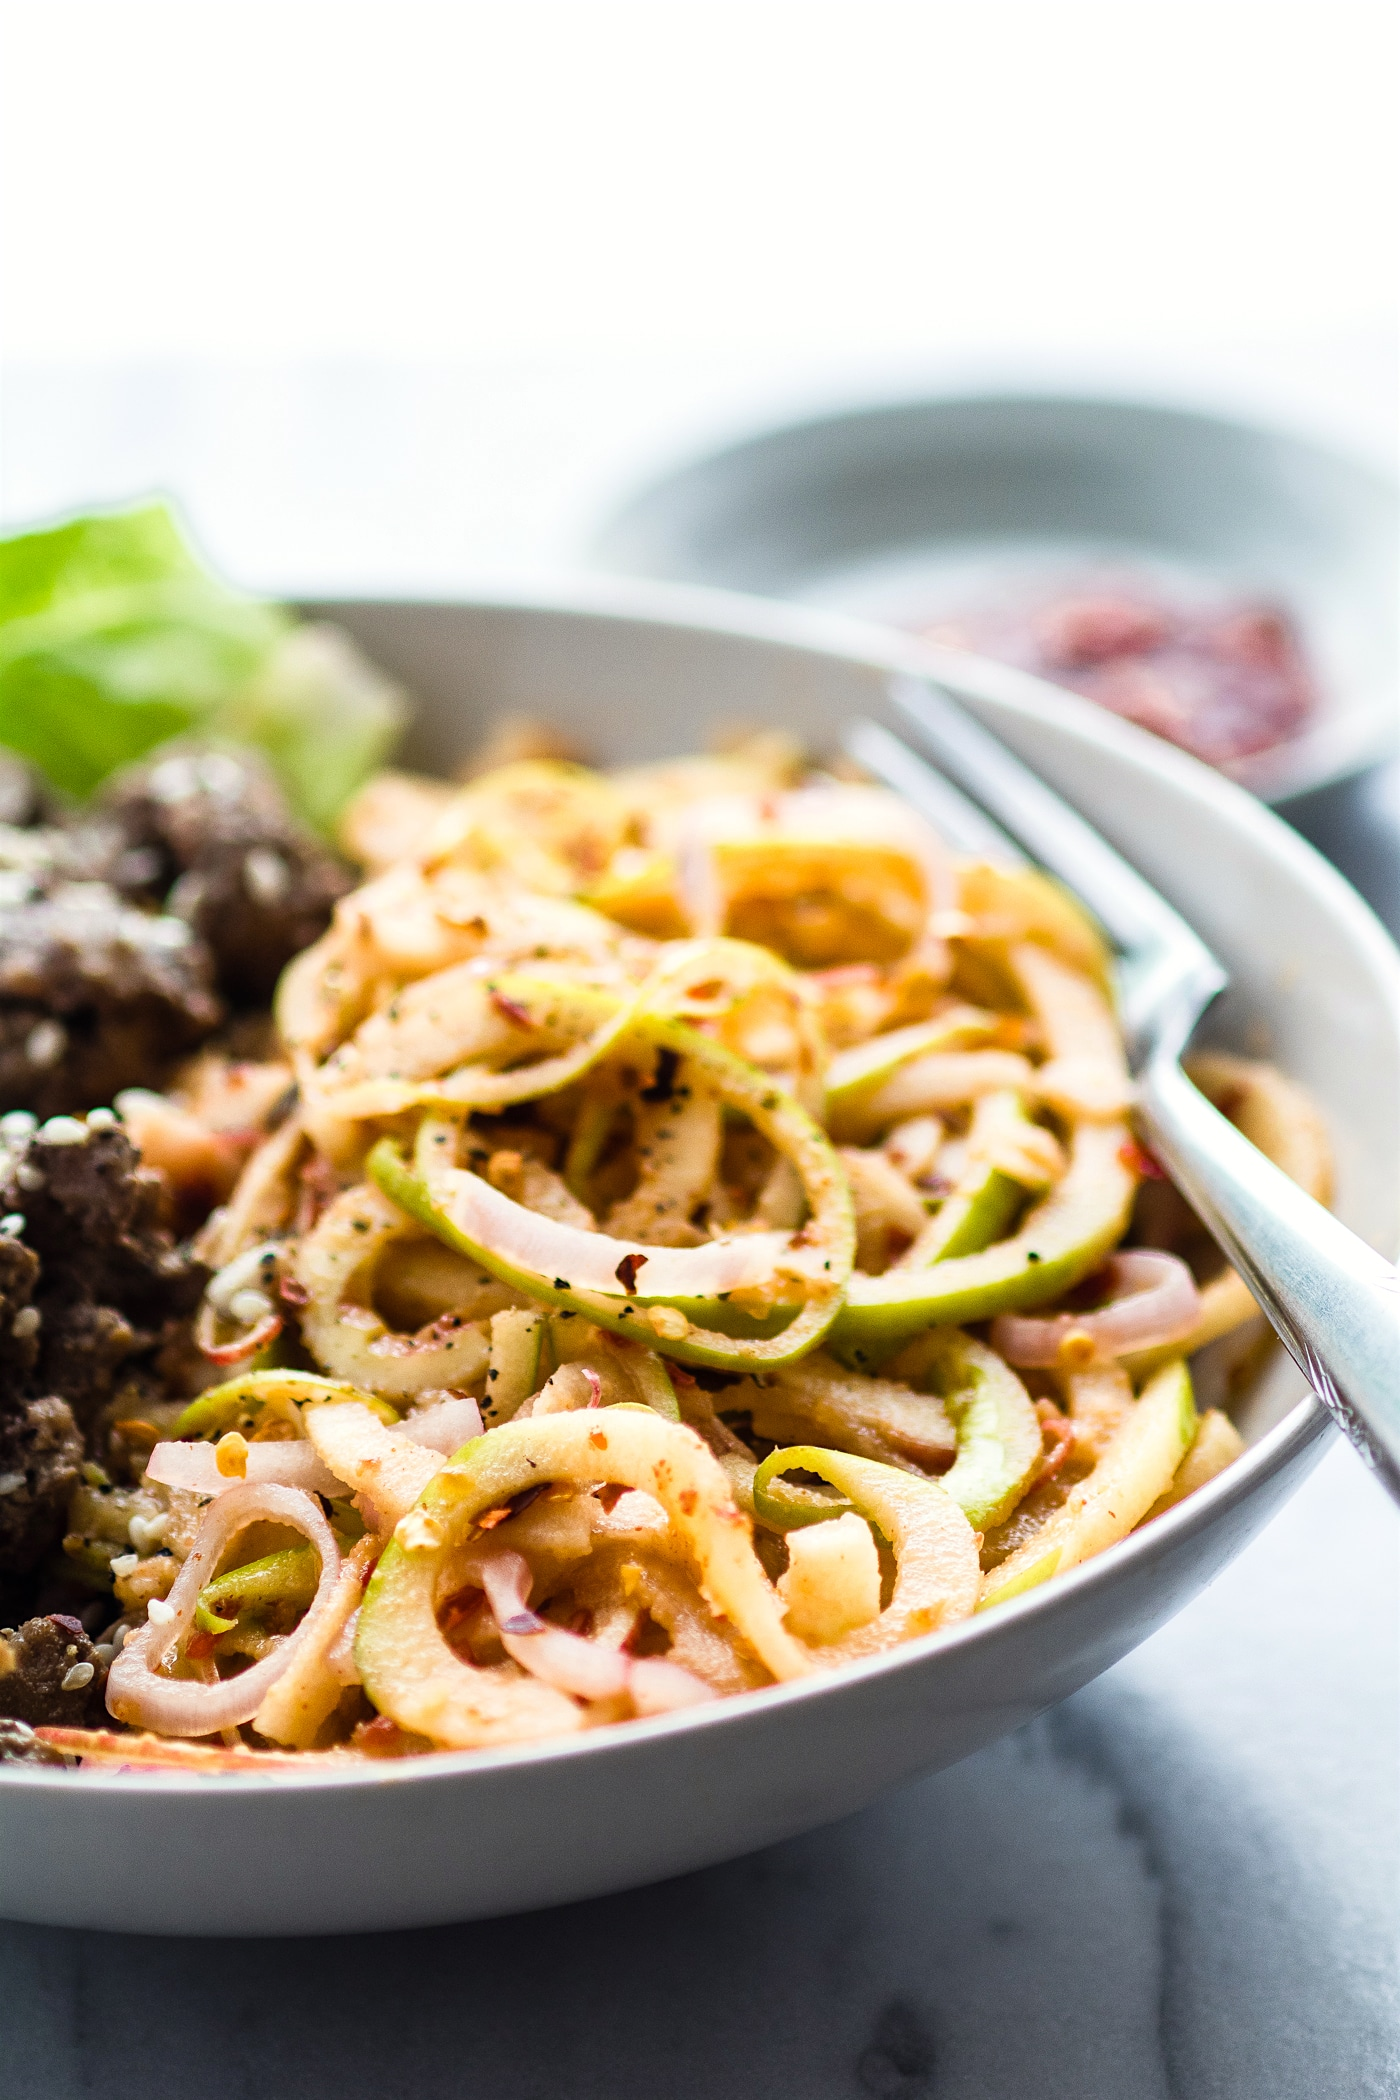 "Spiralized Apple ""kimchi"" salad with Garlic Beef! This Asian inspired salad makes a quick and healthy kimchi substitute. An easy Paleo power bowl meal ready in 20 minutes!"